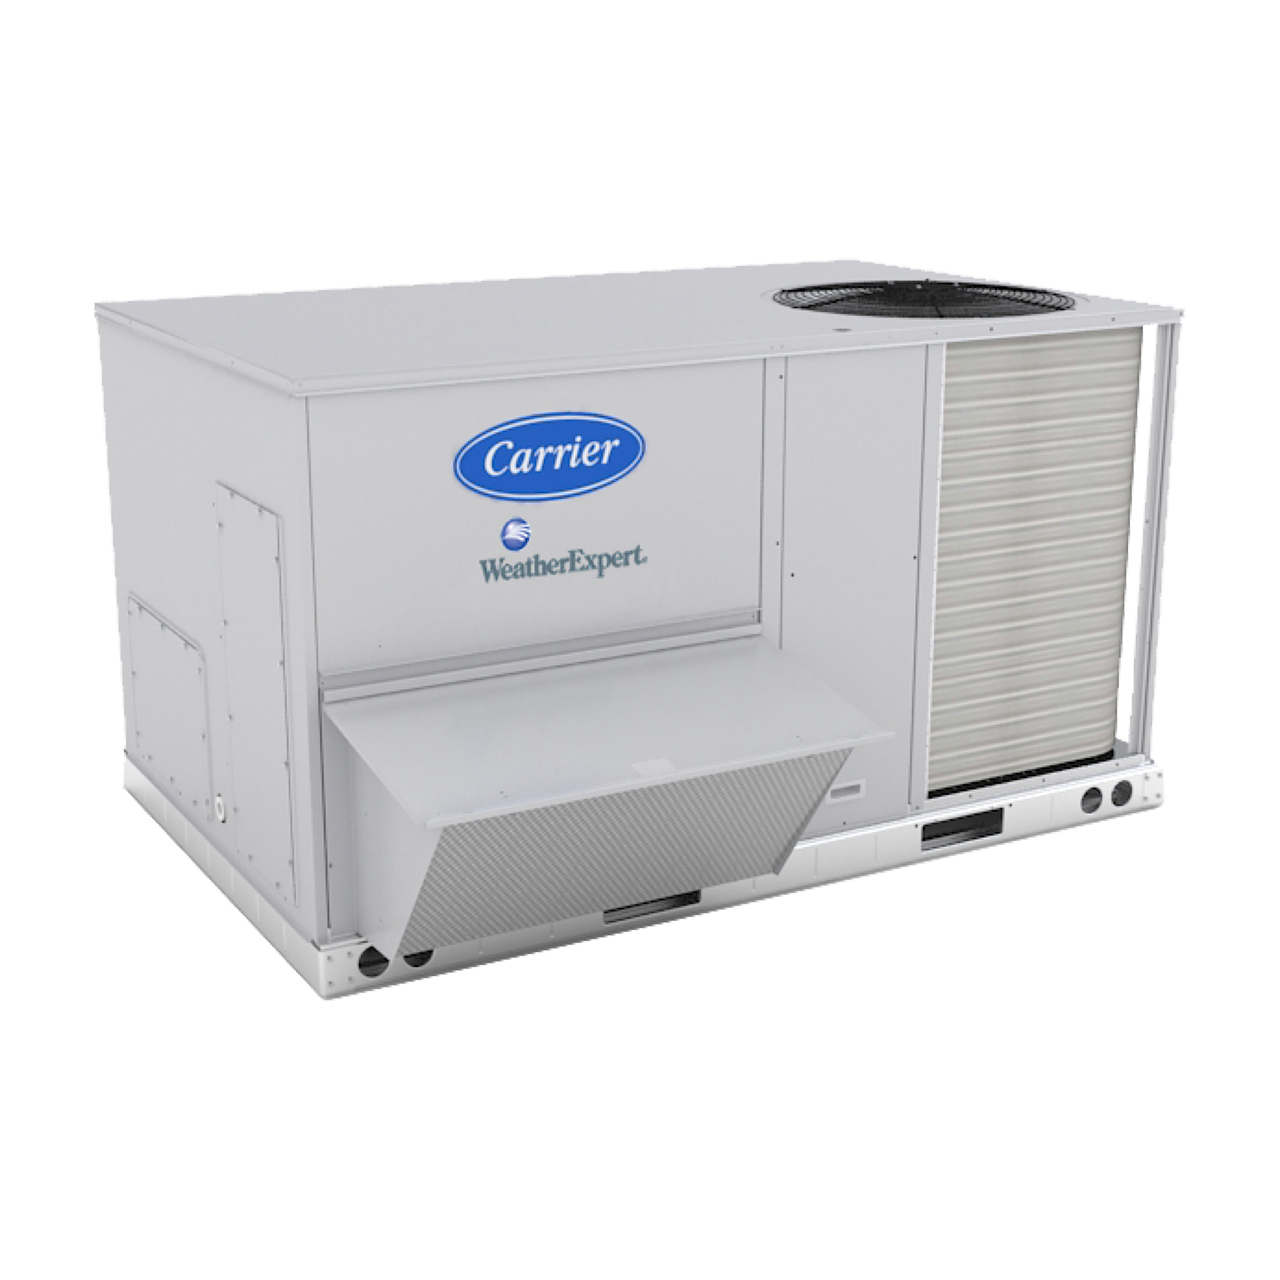 48LC WeatherExpert® rooftop units were designed by customers for customers. They are Carrier's most efficient commercial packaged rooftop ever produced and have some of the industry's highest IEER's available.